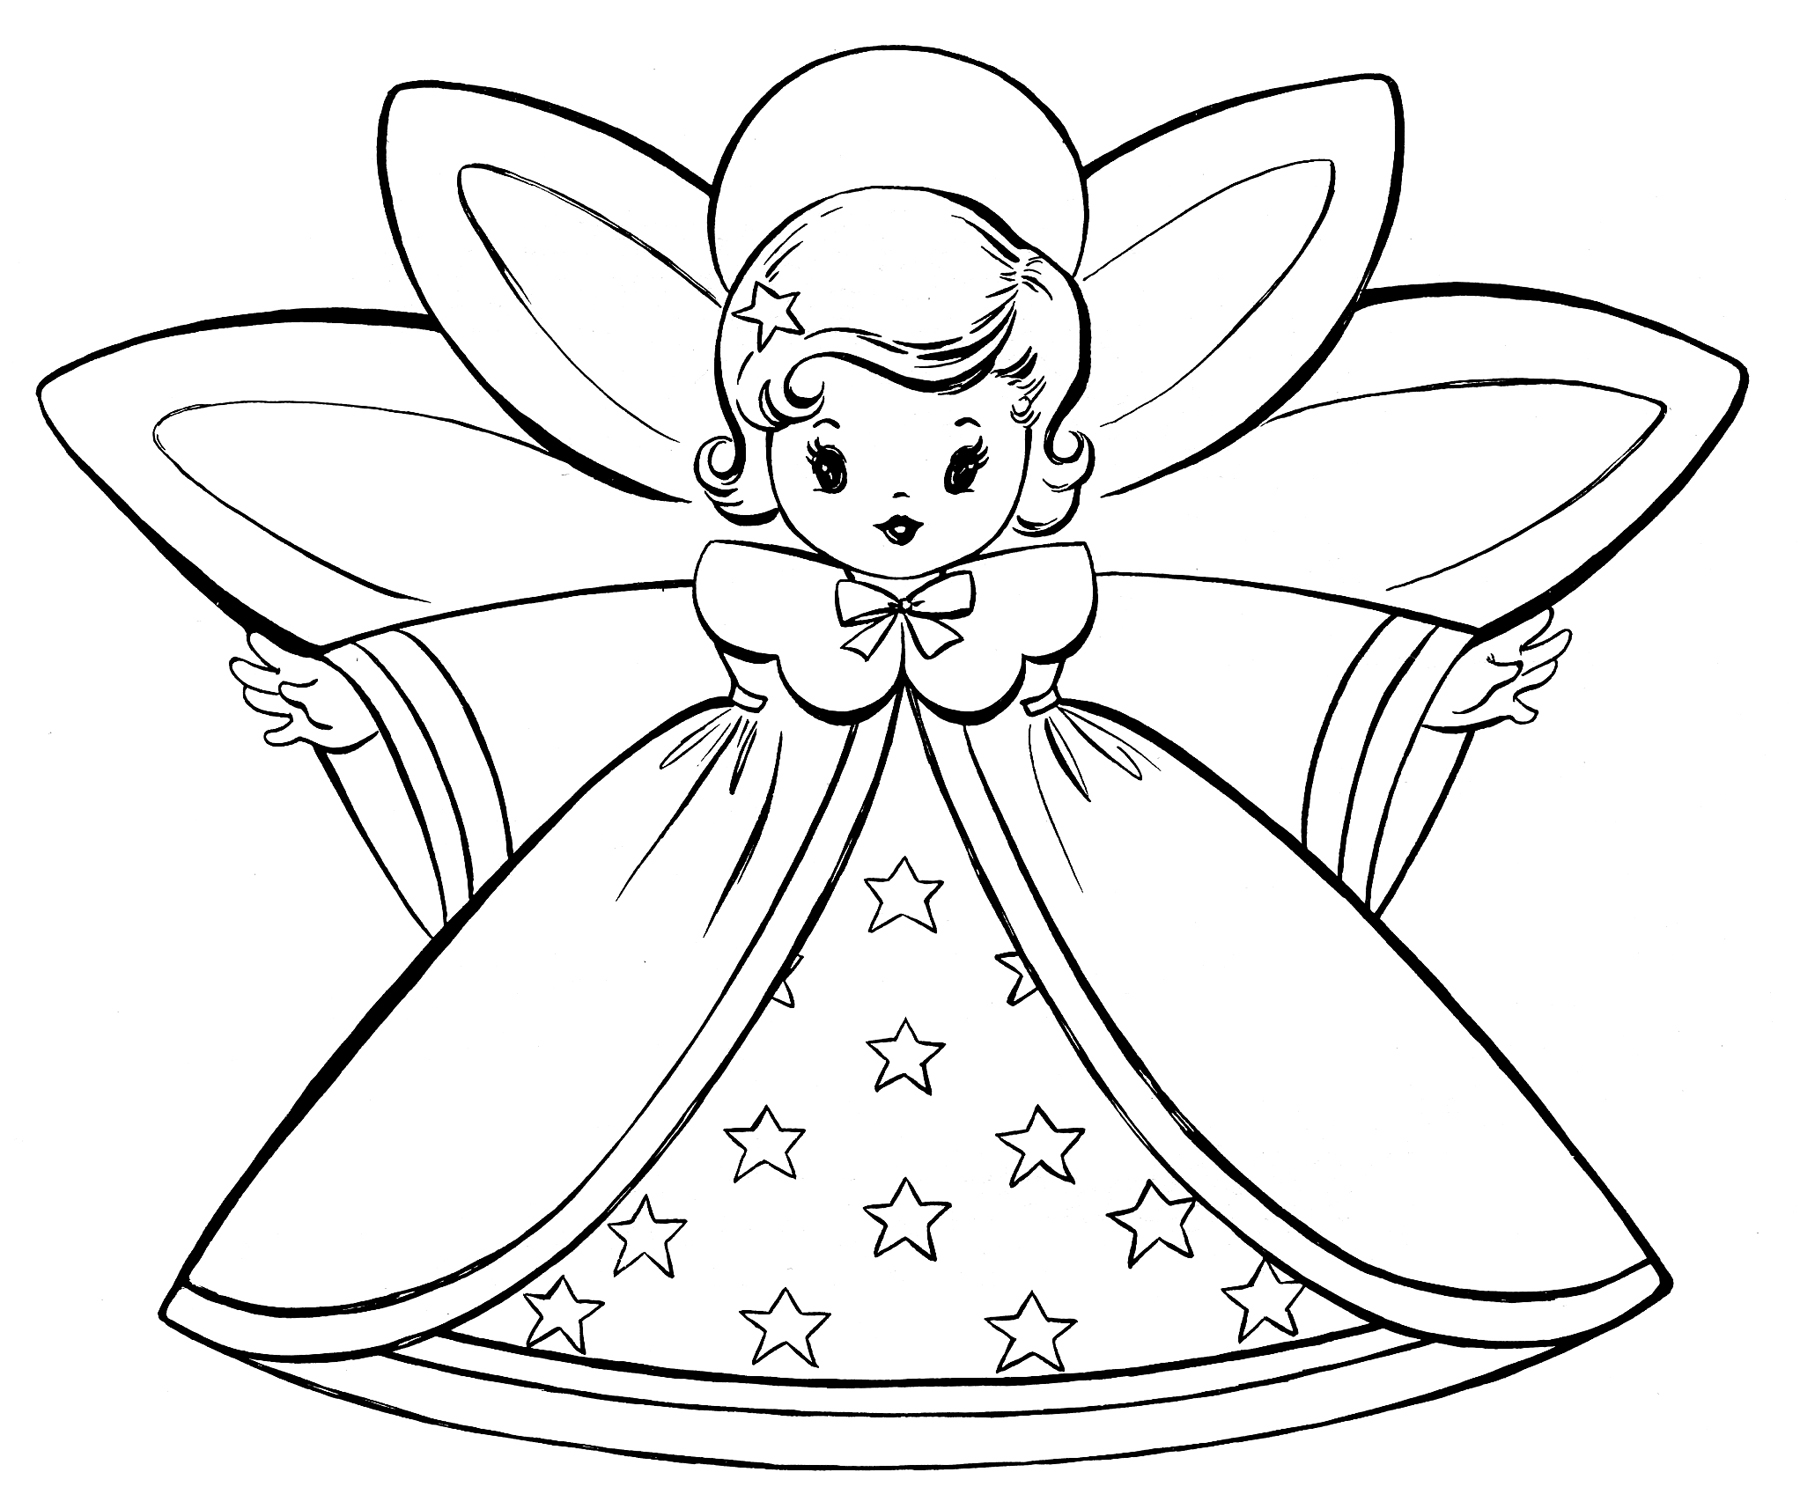 free christmas coloring pages retro angels the graphics fairy. Black Bedroom Furniture Sets. Home Design Ideas